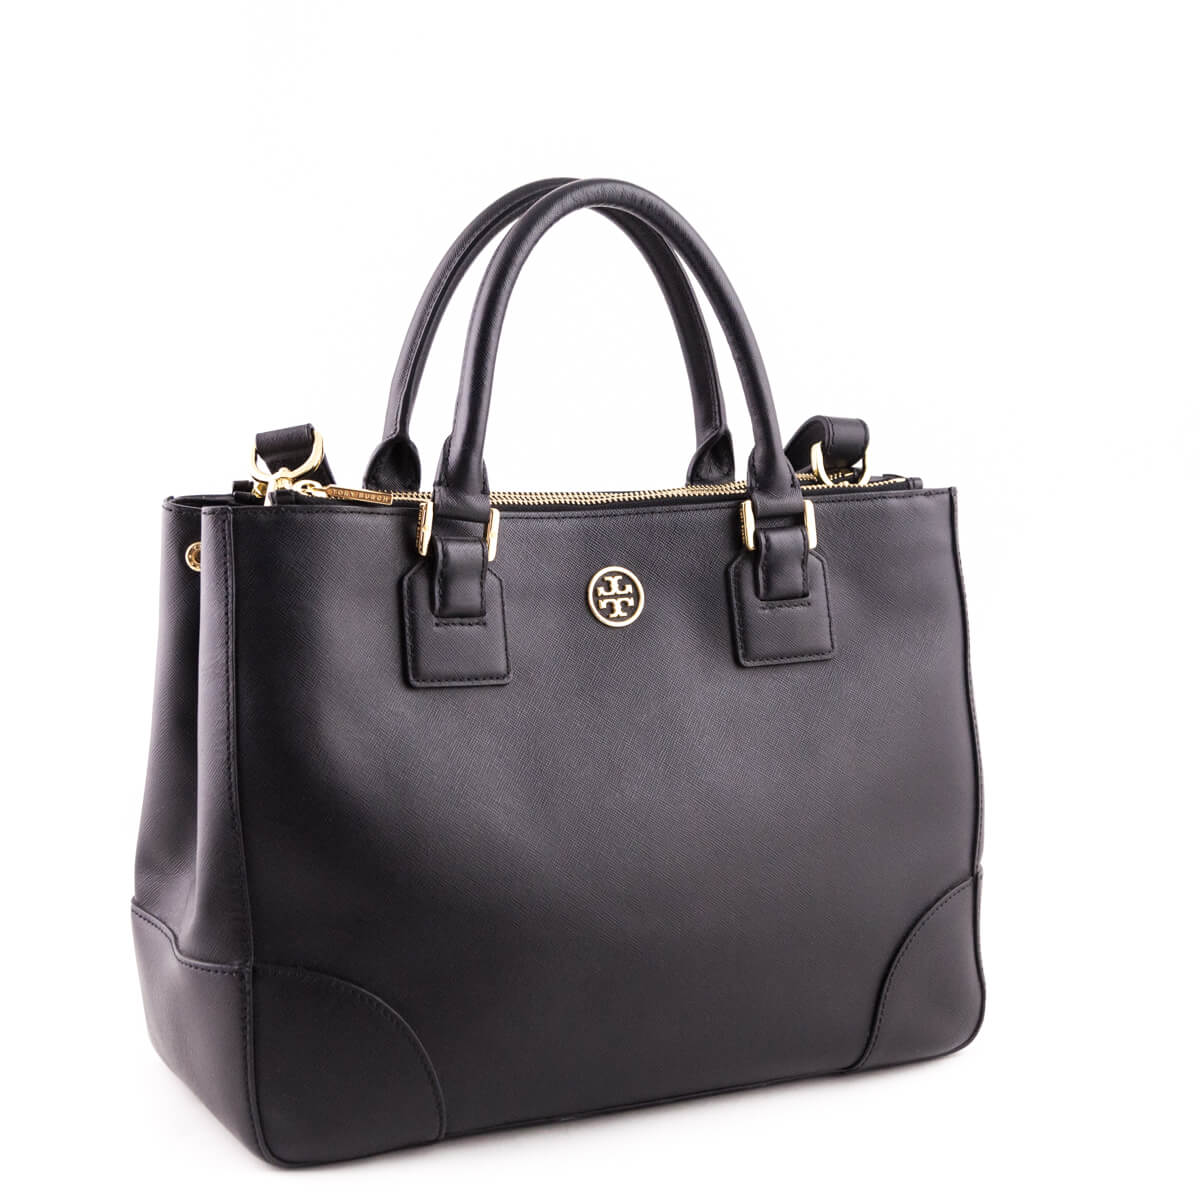 aced9baa302 ... Tory Burch Black Textured Leather Robinson Double Zip Tote - LOVE that  BAG - Preowned Authentic ...